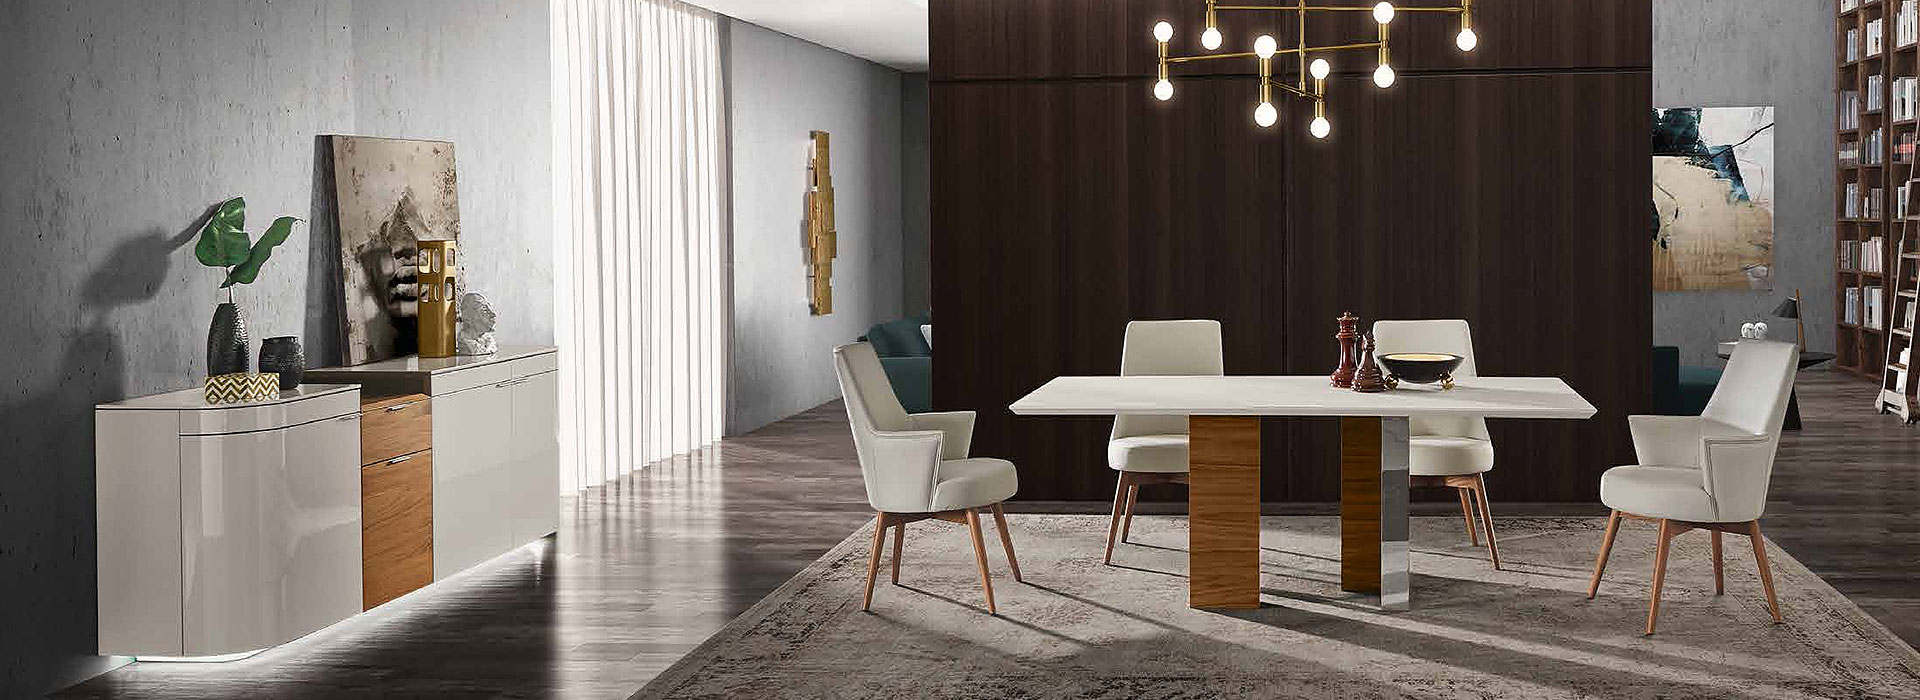 4 dcor trends youre going to want for your home in 2017 dining rooms dzzzfo